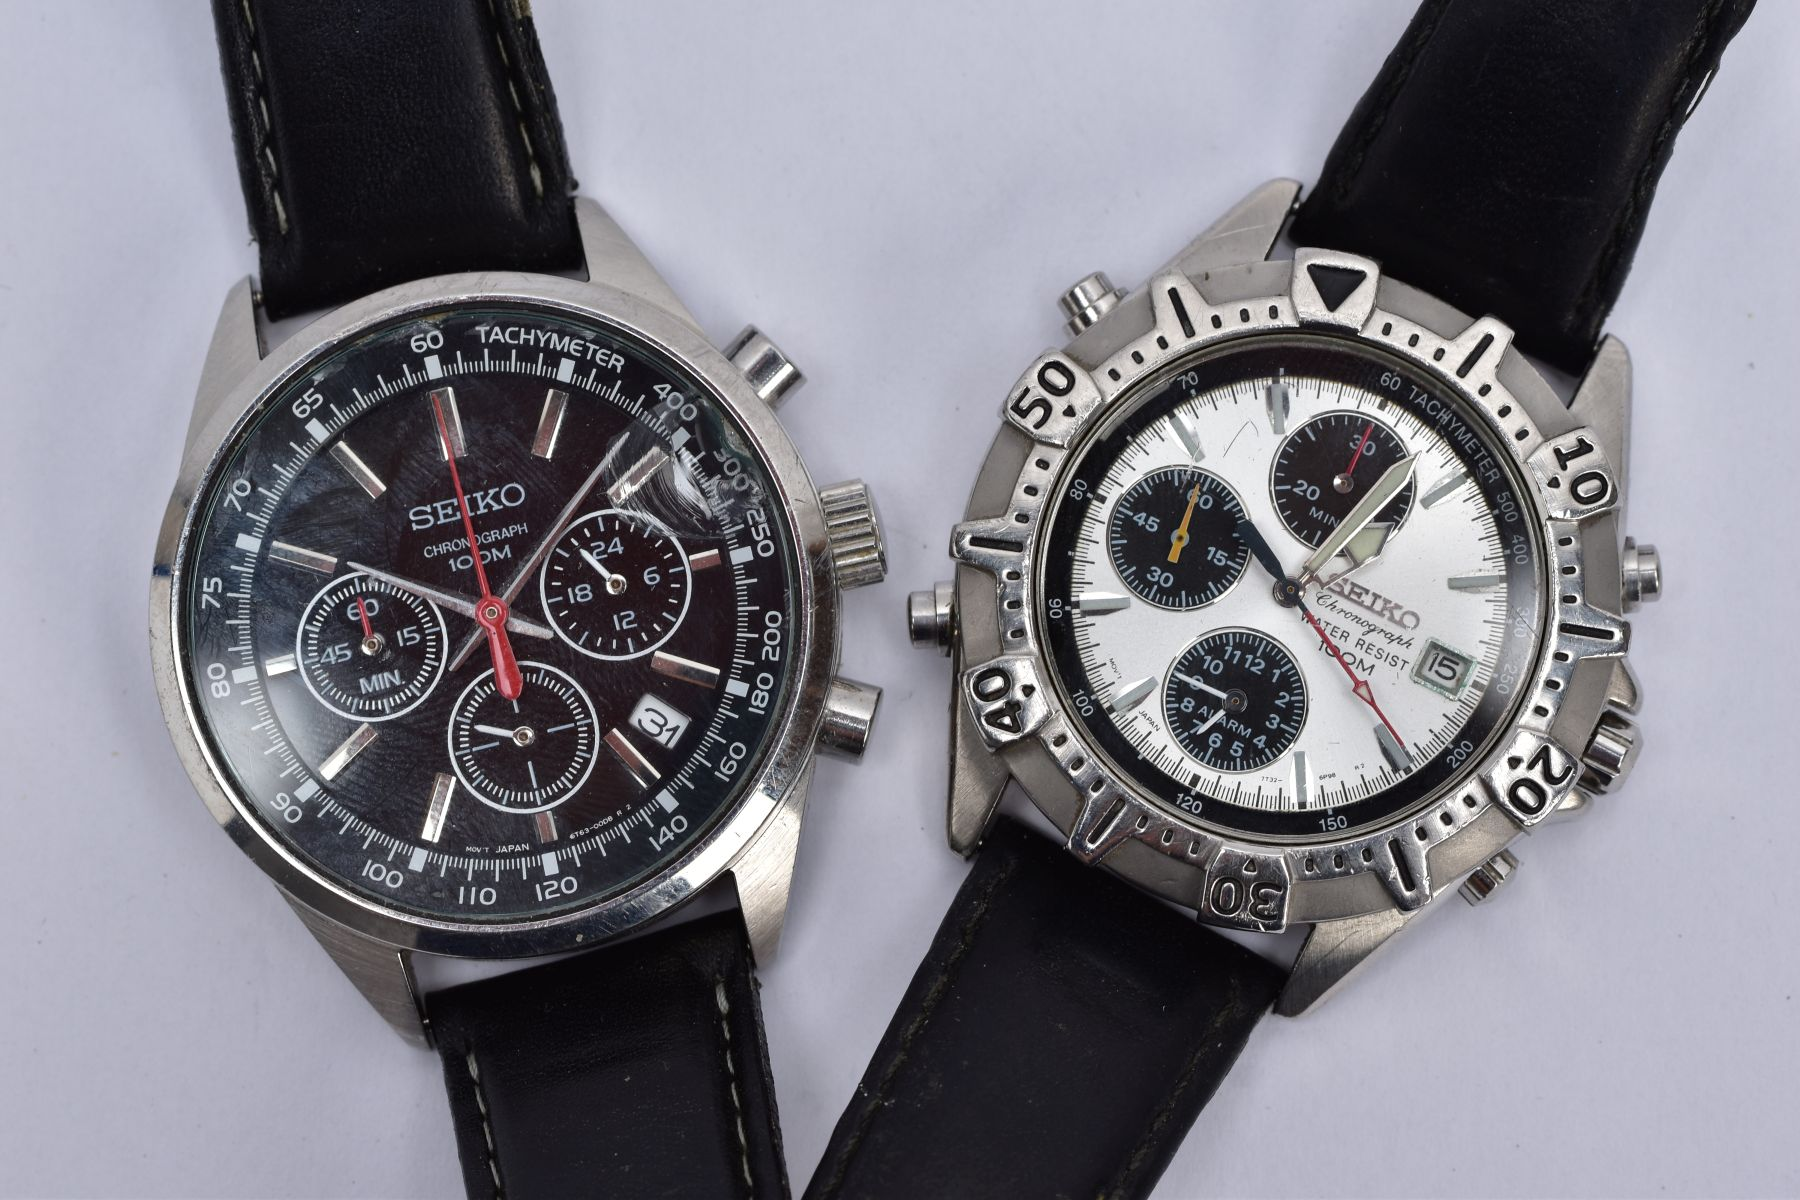 TWO GENTS 'SEIKO CHRONOGRAPH' WRISTWATCHES, the first with round black dial signed 'Seiko - Image 2 of 5